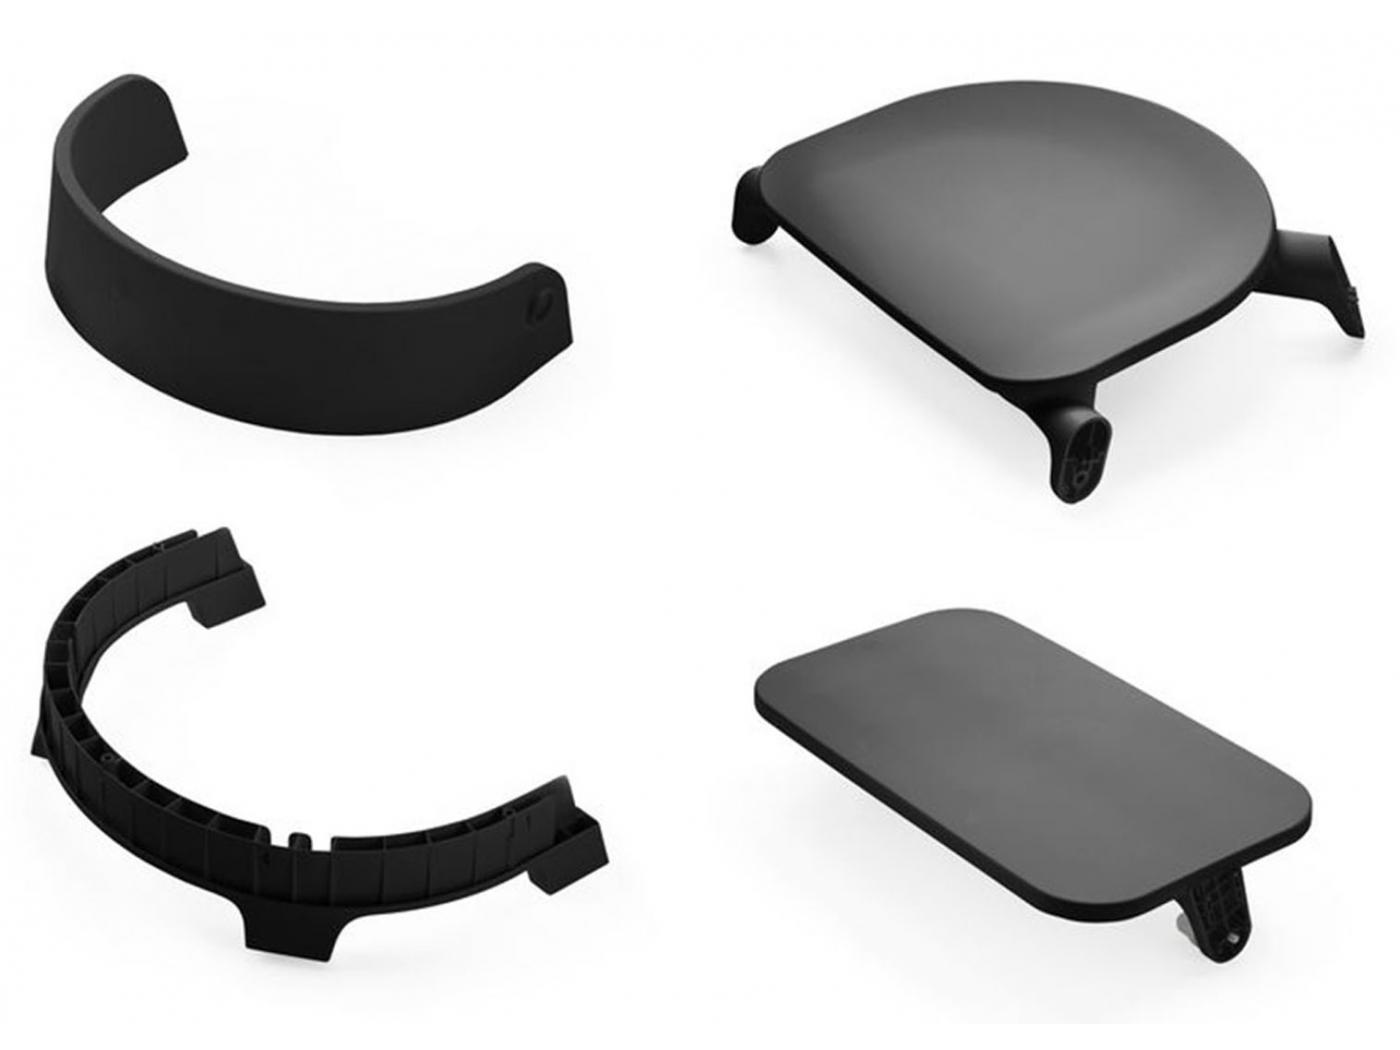 stokke assise noir pour chaise haute steps. Black Bedroom Furniture Sets. Home Design Ideas